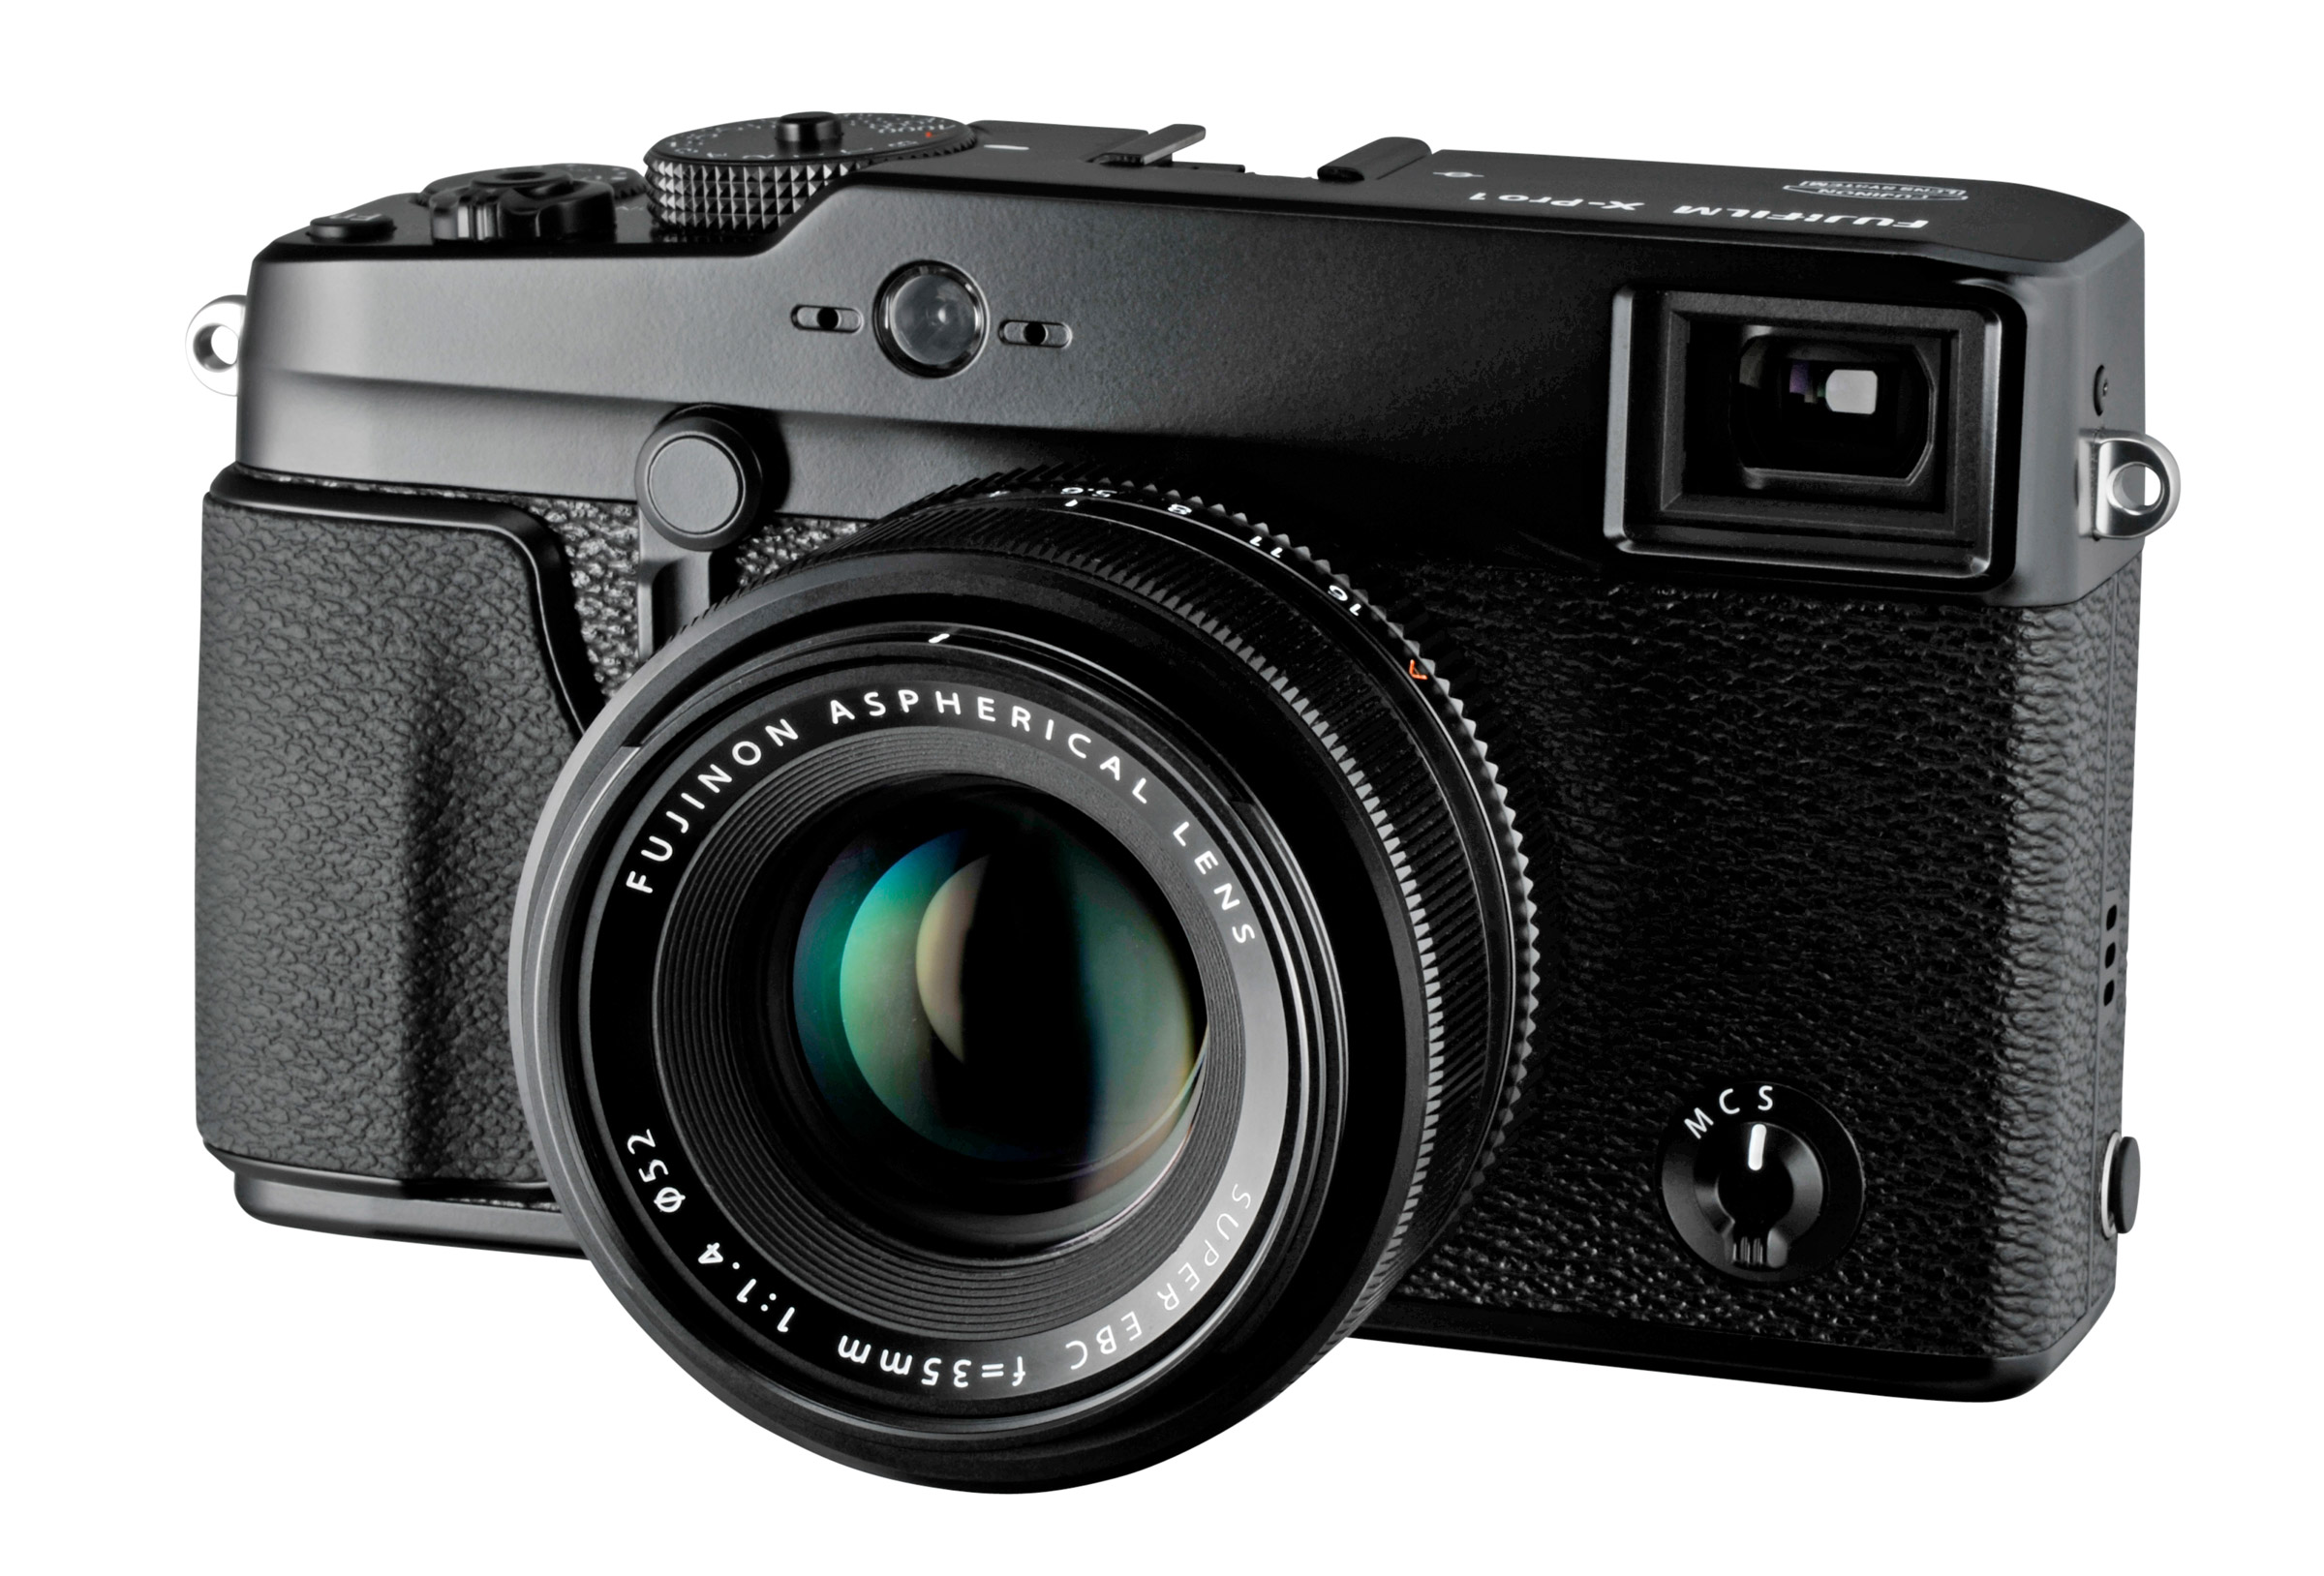 fujifilm x pro1 specifications and opinions juzaphoto. Black Bedroom Furniture Sets. Home Design Ideas